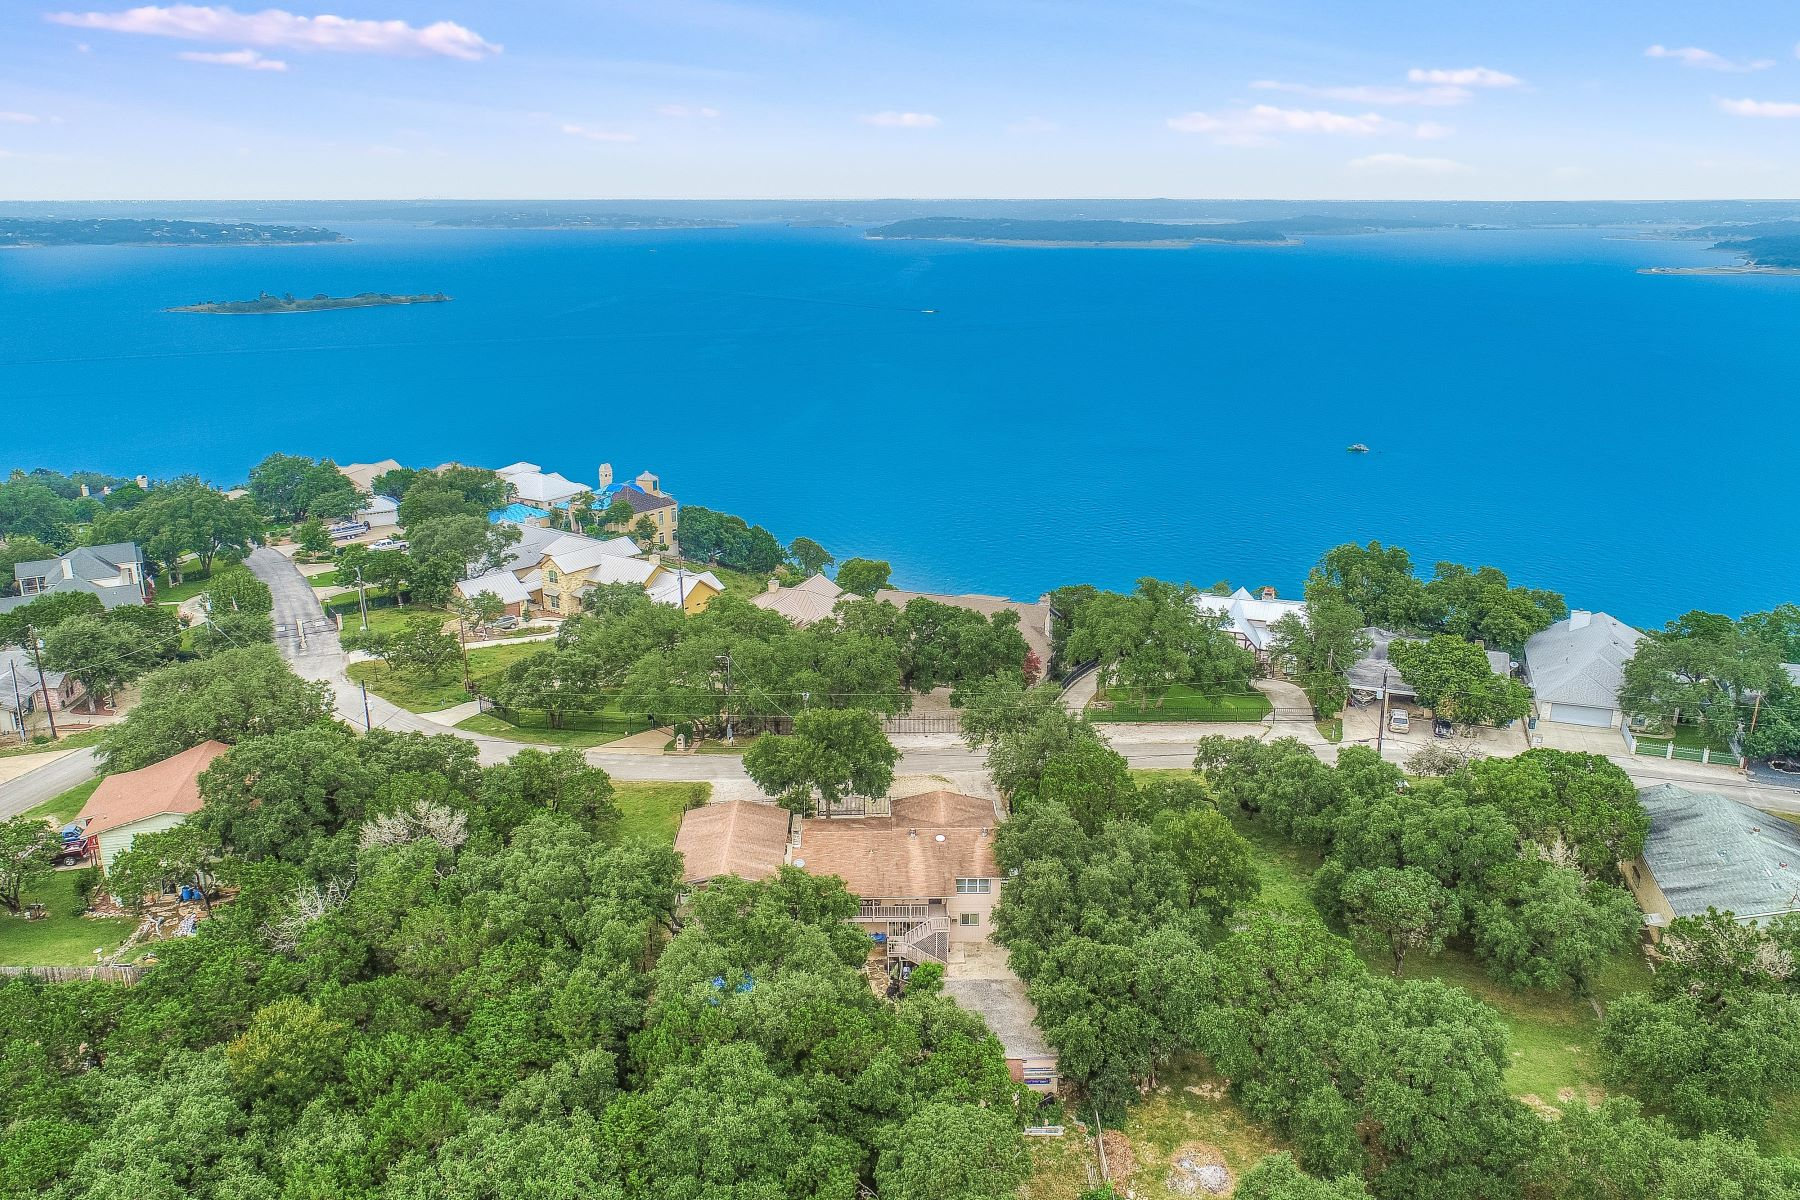 Single Family Homes for Sale at Pristine Canyon Lake Two Story 1066 Janet Drive, Canyon Lake, Texas 78133 United States